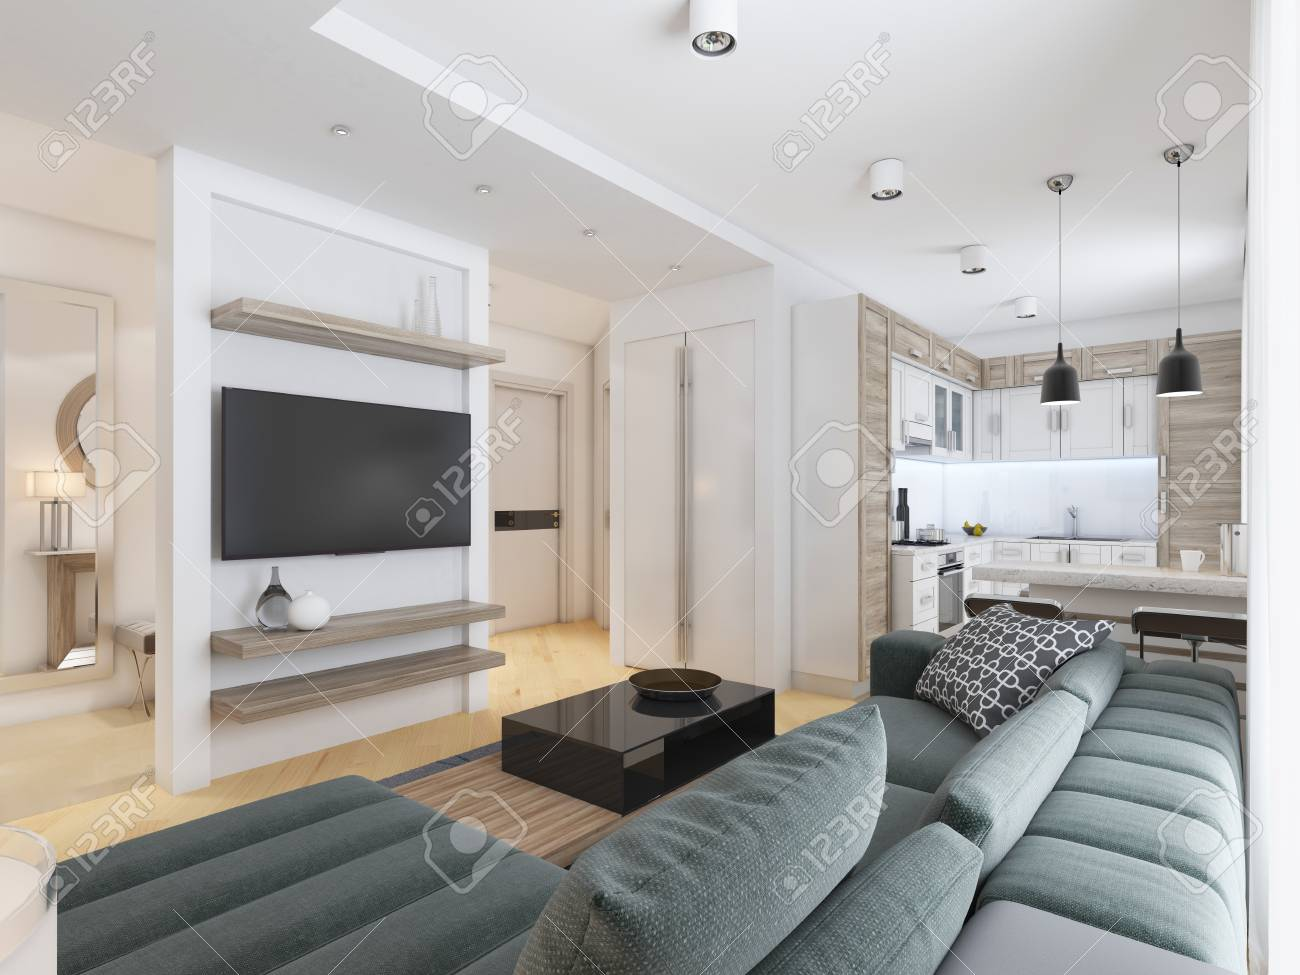 Luxurious Modern Studio Apartment In Contemporary Style. 3D ...